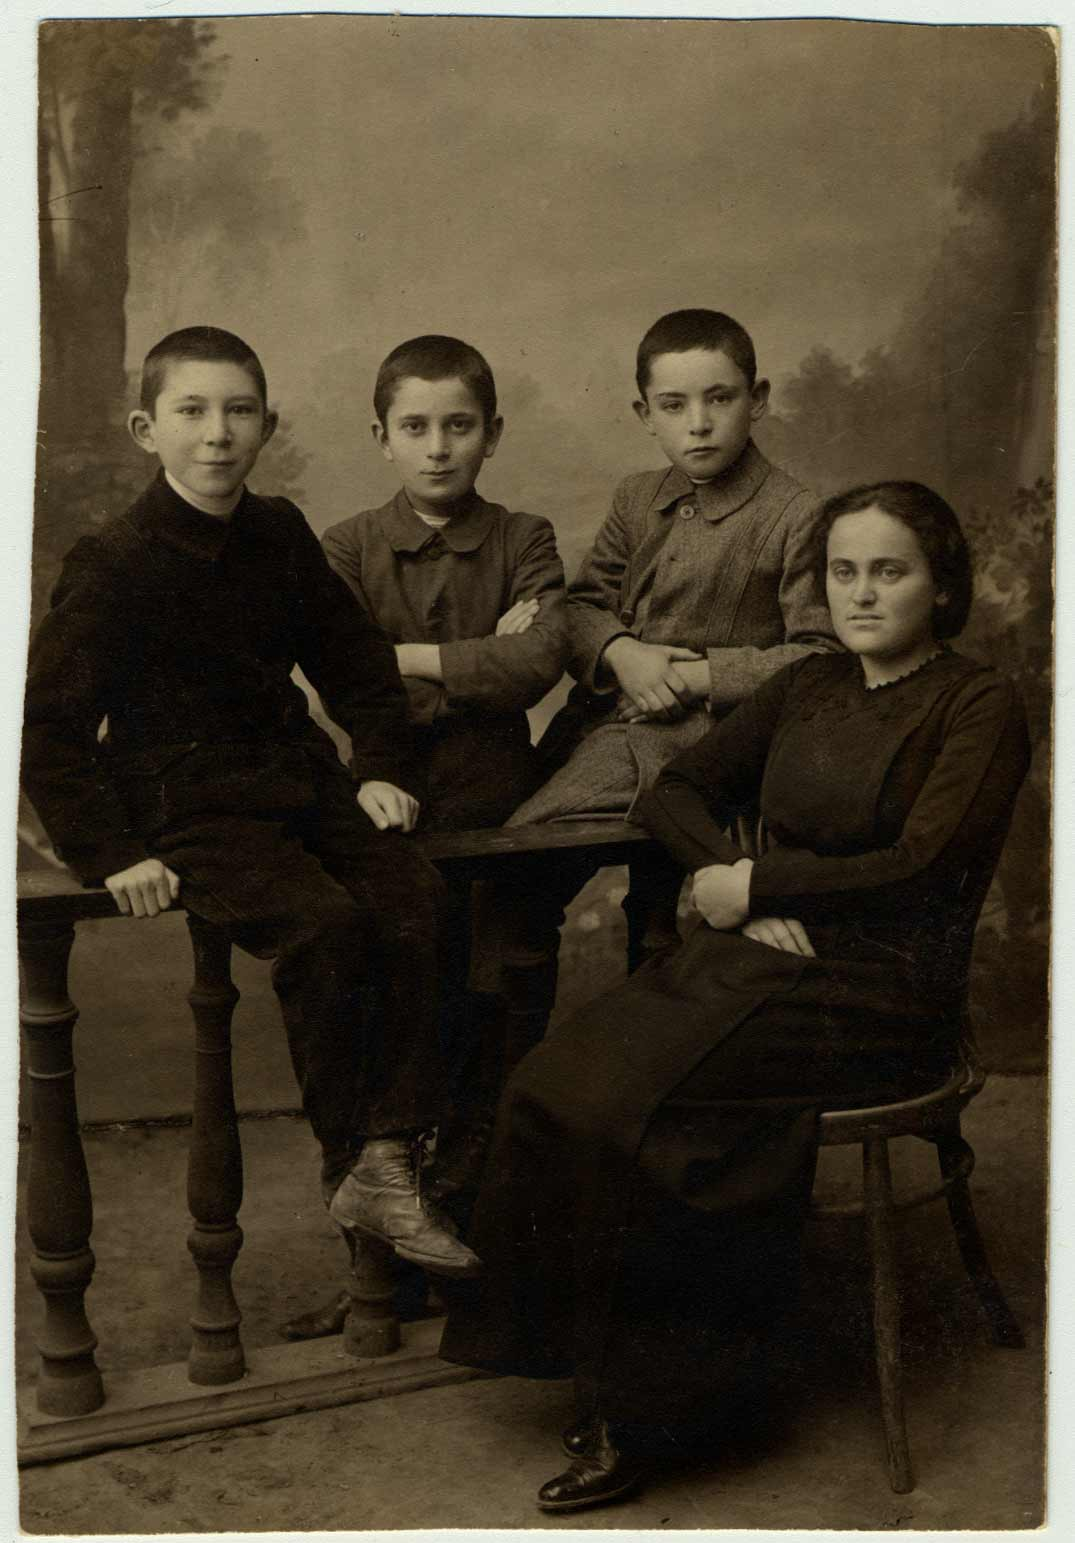 Ginda Rosenblatt and three of her students in Kiev.